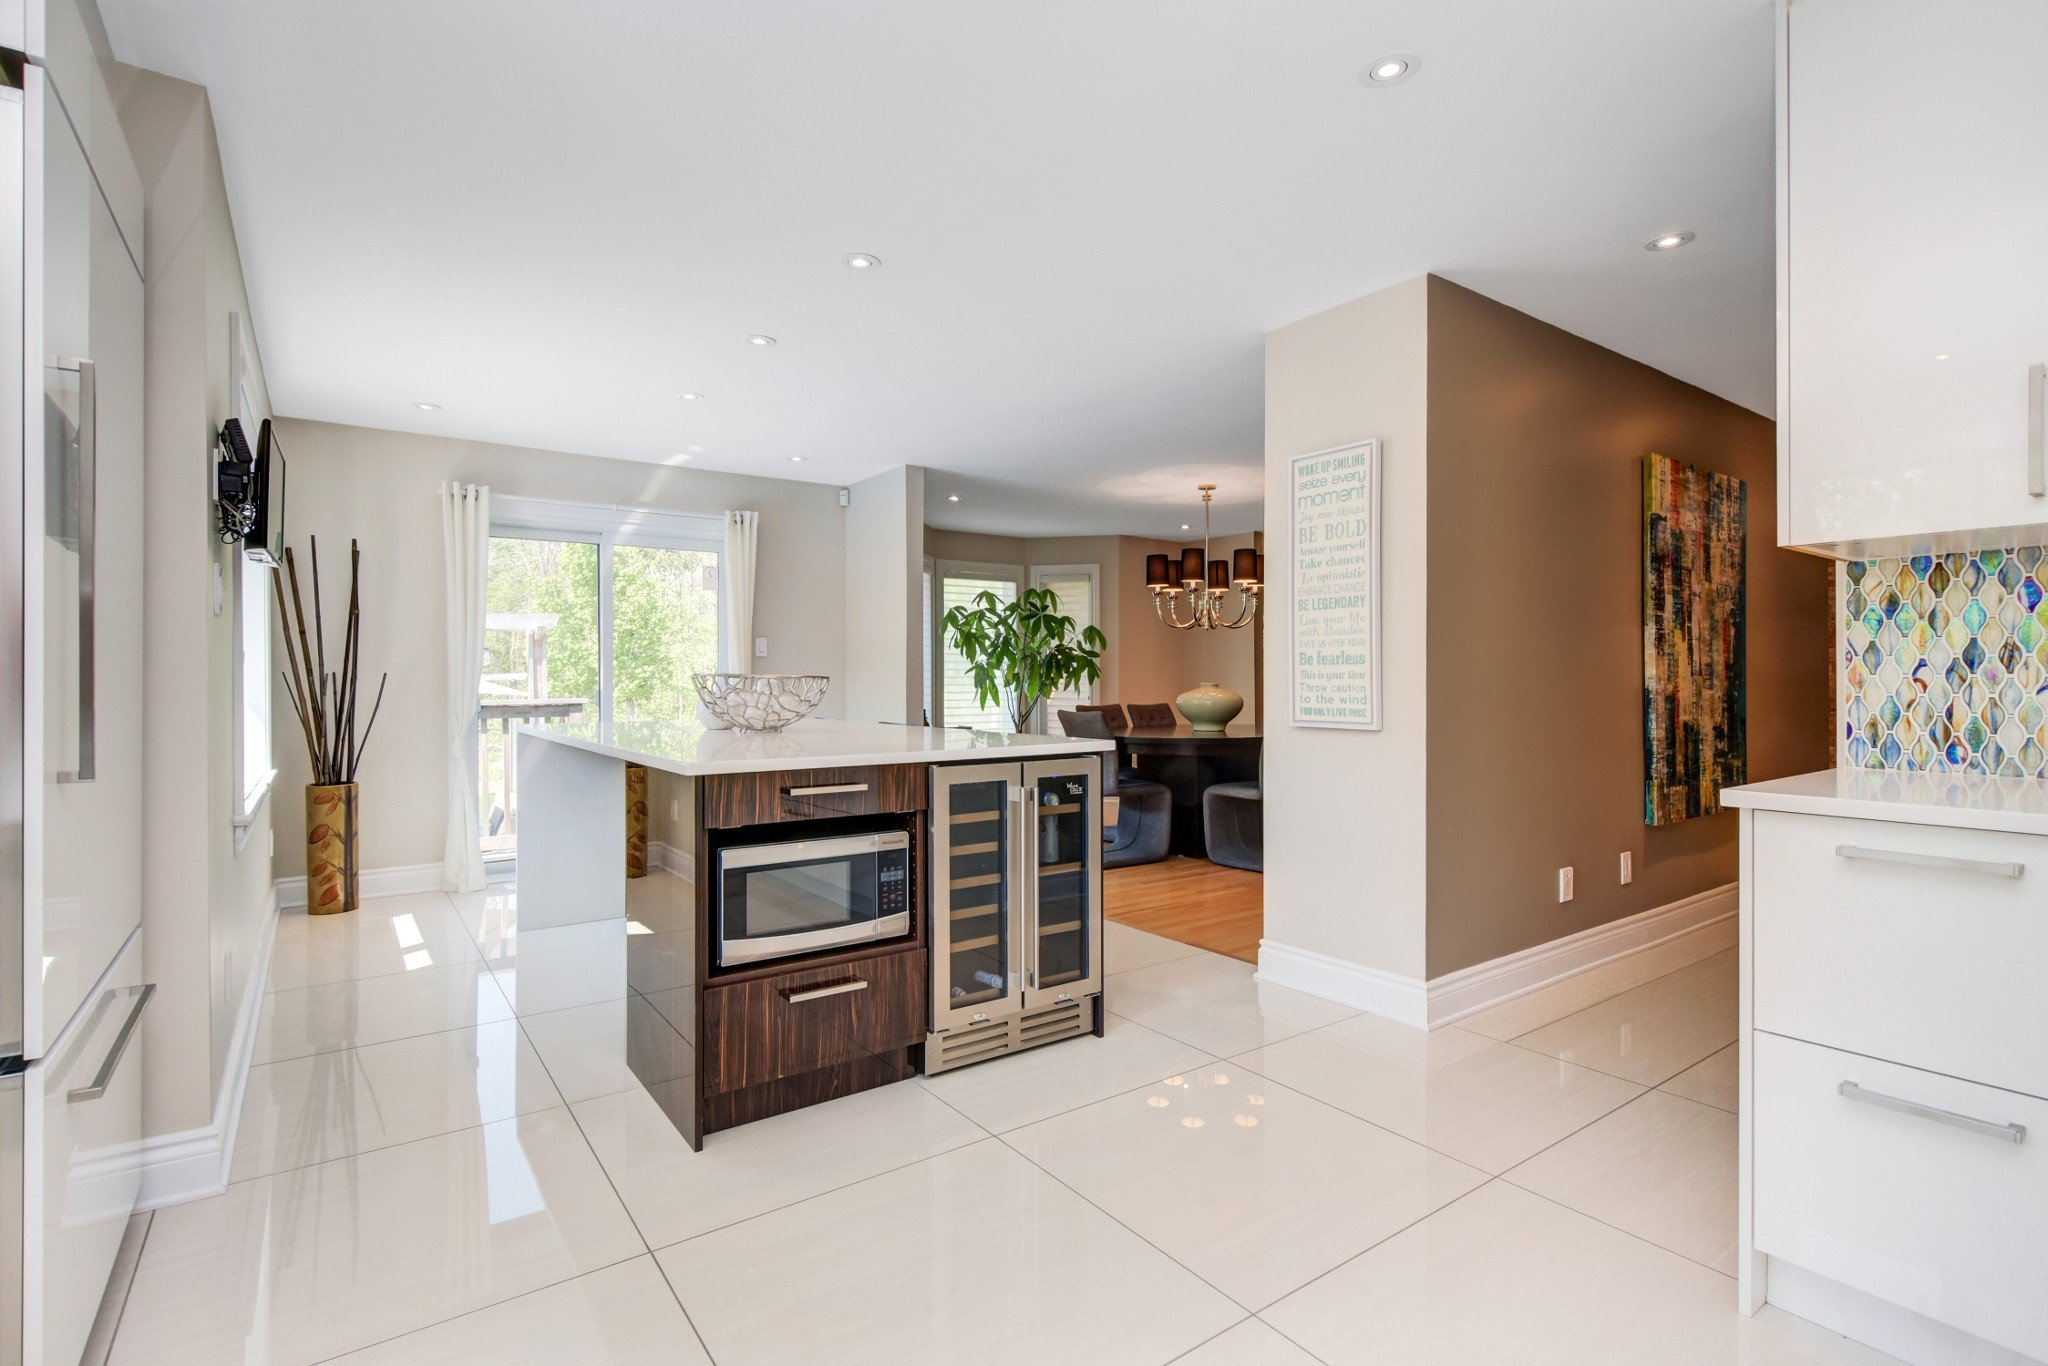 Photo 27: Photos: 1490 REINDEER WAY.: Greely House for sale (Ottawa)  : MLS®# 1109530